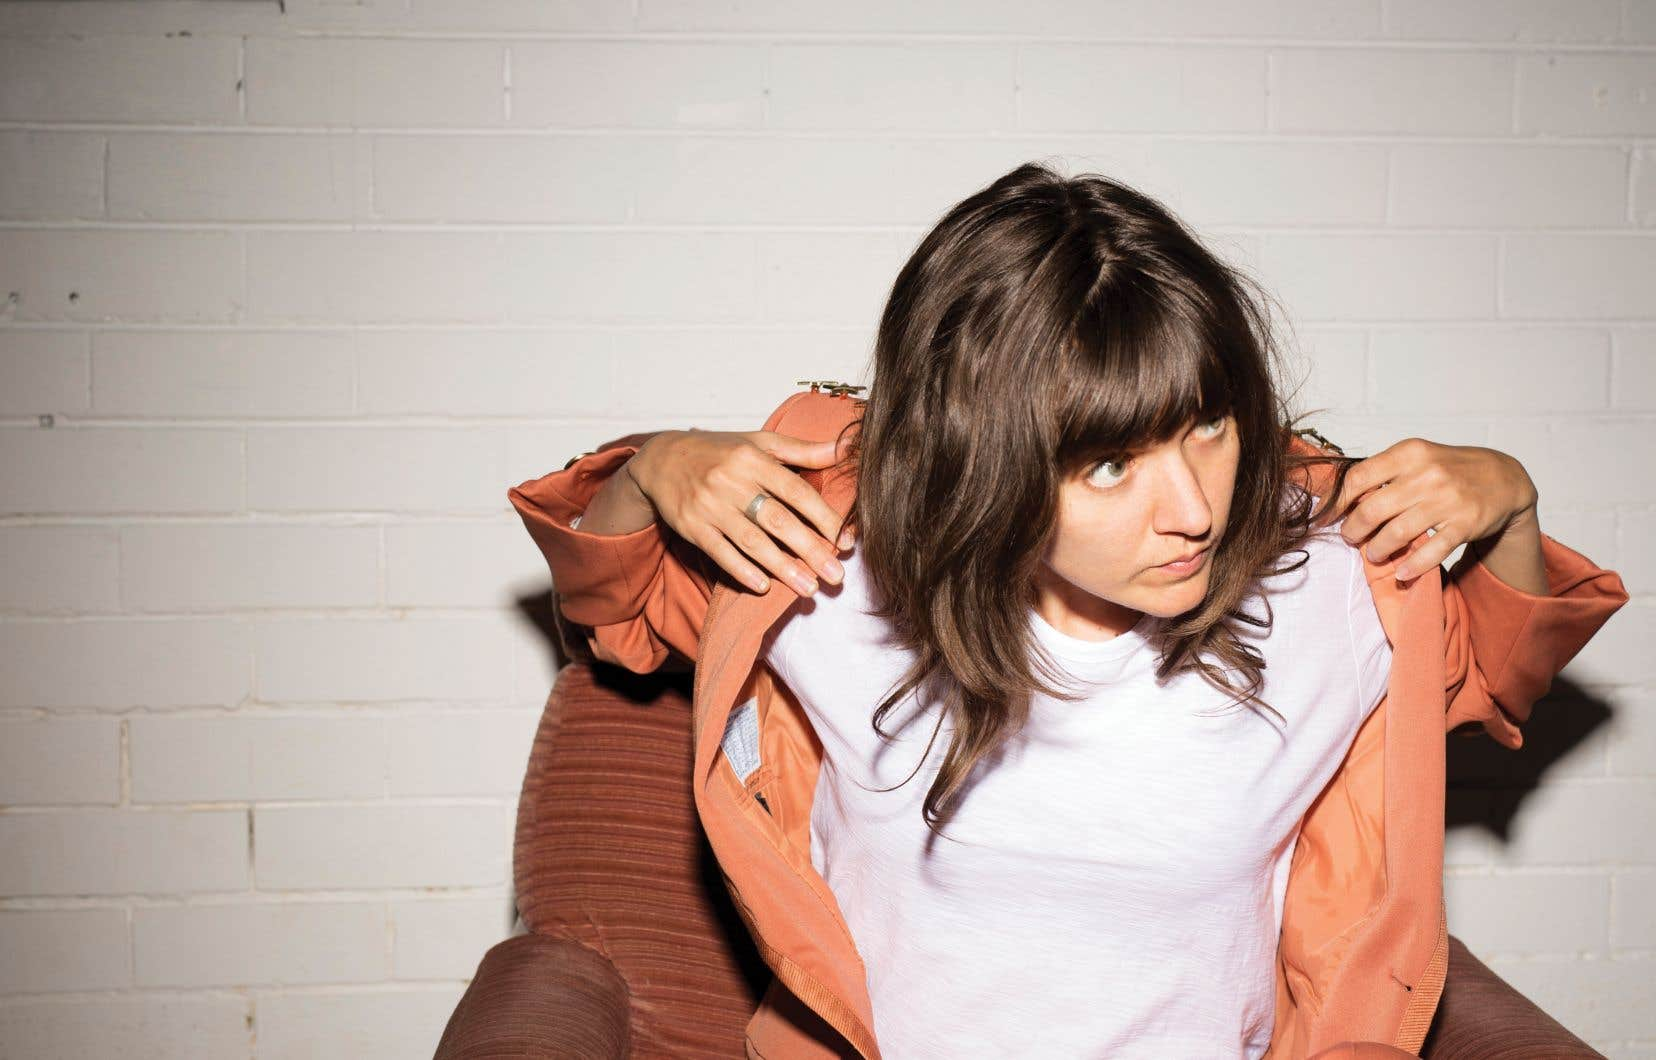 Auteure, compositrice, interprète, guitariste, Courtney Barnett